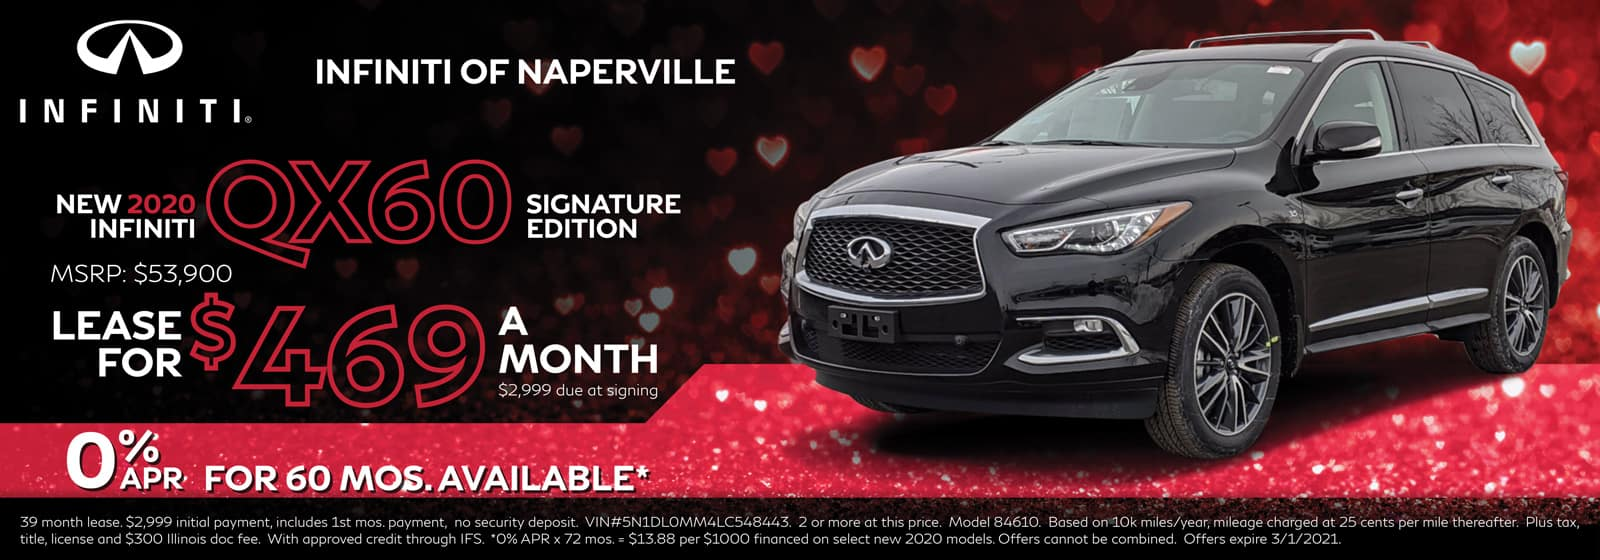 2020 INFINITI QX60 lease offer, $469/mo for 39 Months | Naperville, IL